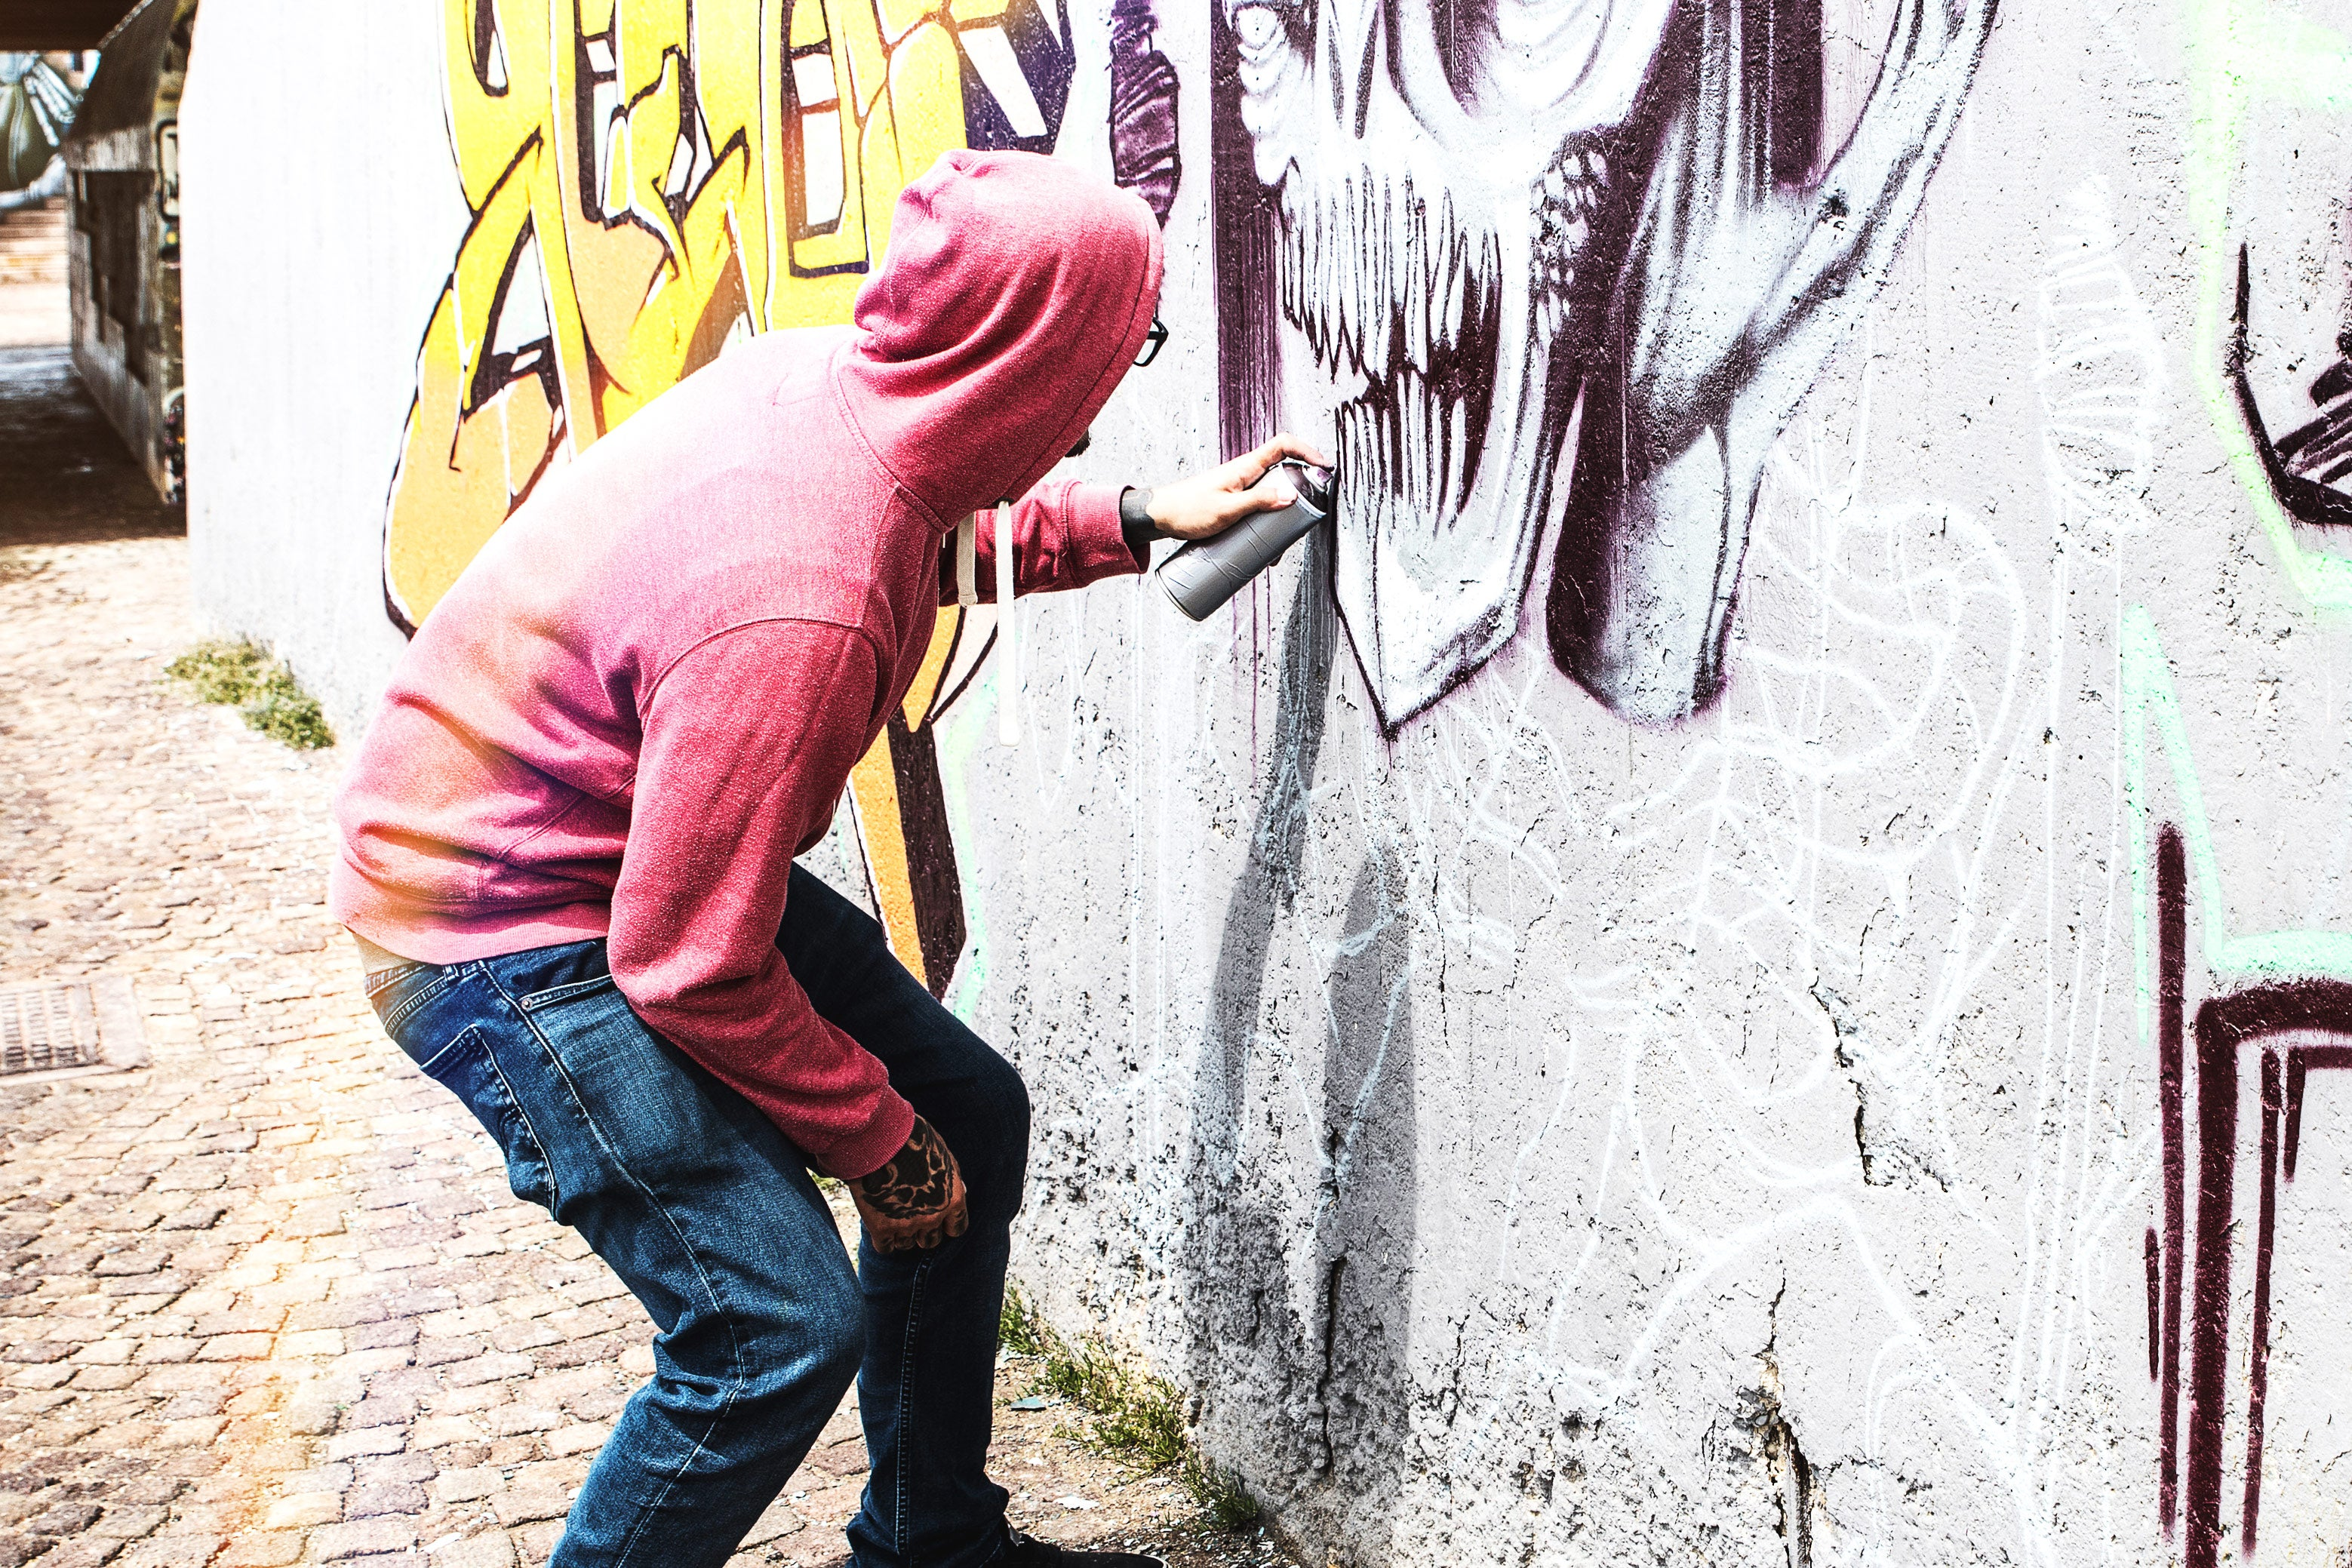 Street artist painting colorful graffiti on public wall with multi-color aerosol spray. The artist is not Kyle.